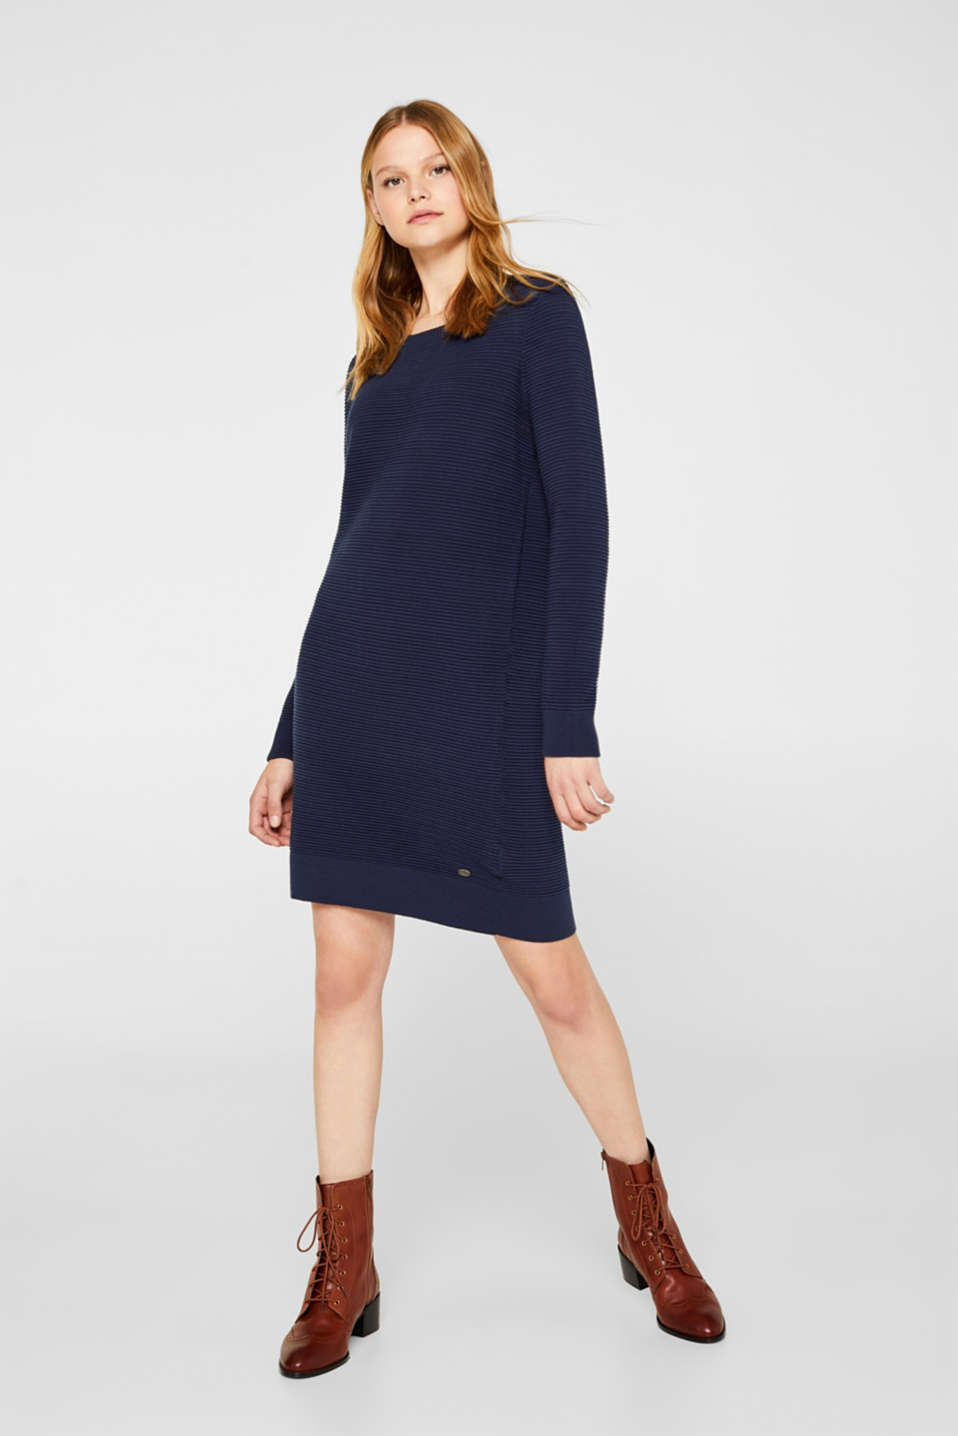 Knit dress with a ribbed texture, NAVY 2, detail image number 1